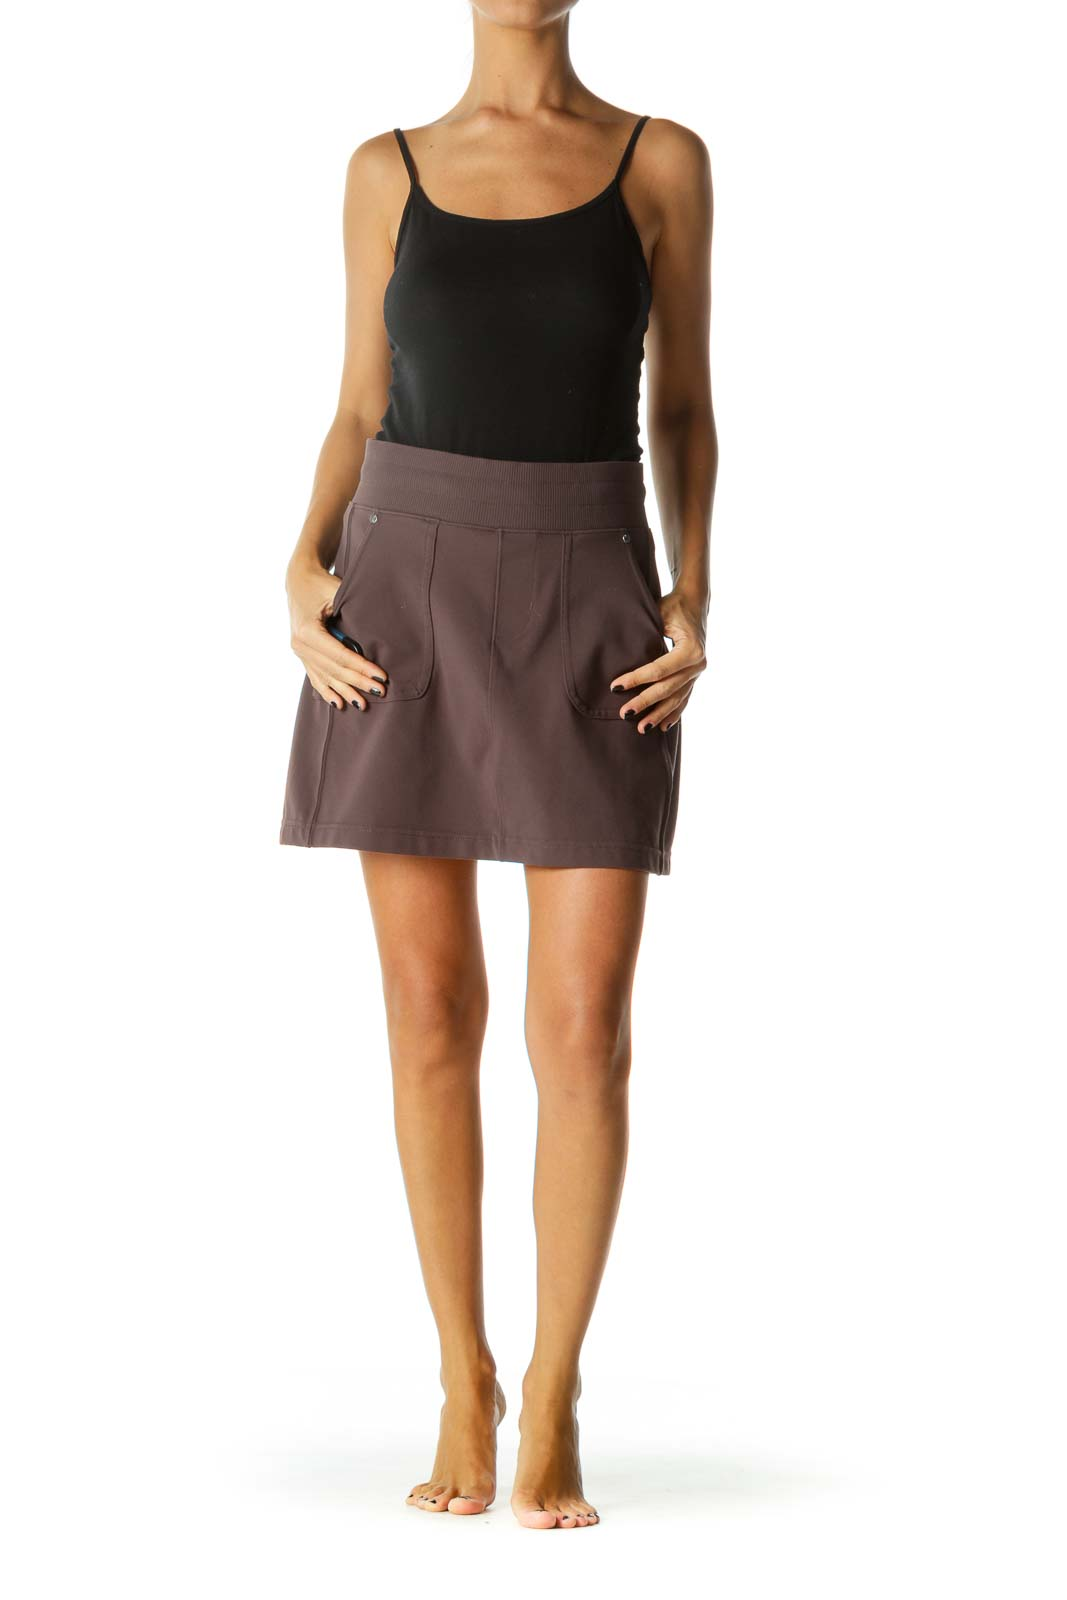 Gray Pocketed Stretch Active Skirt with Inside Stretch Shorts